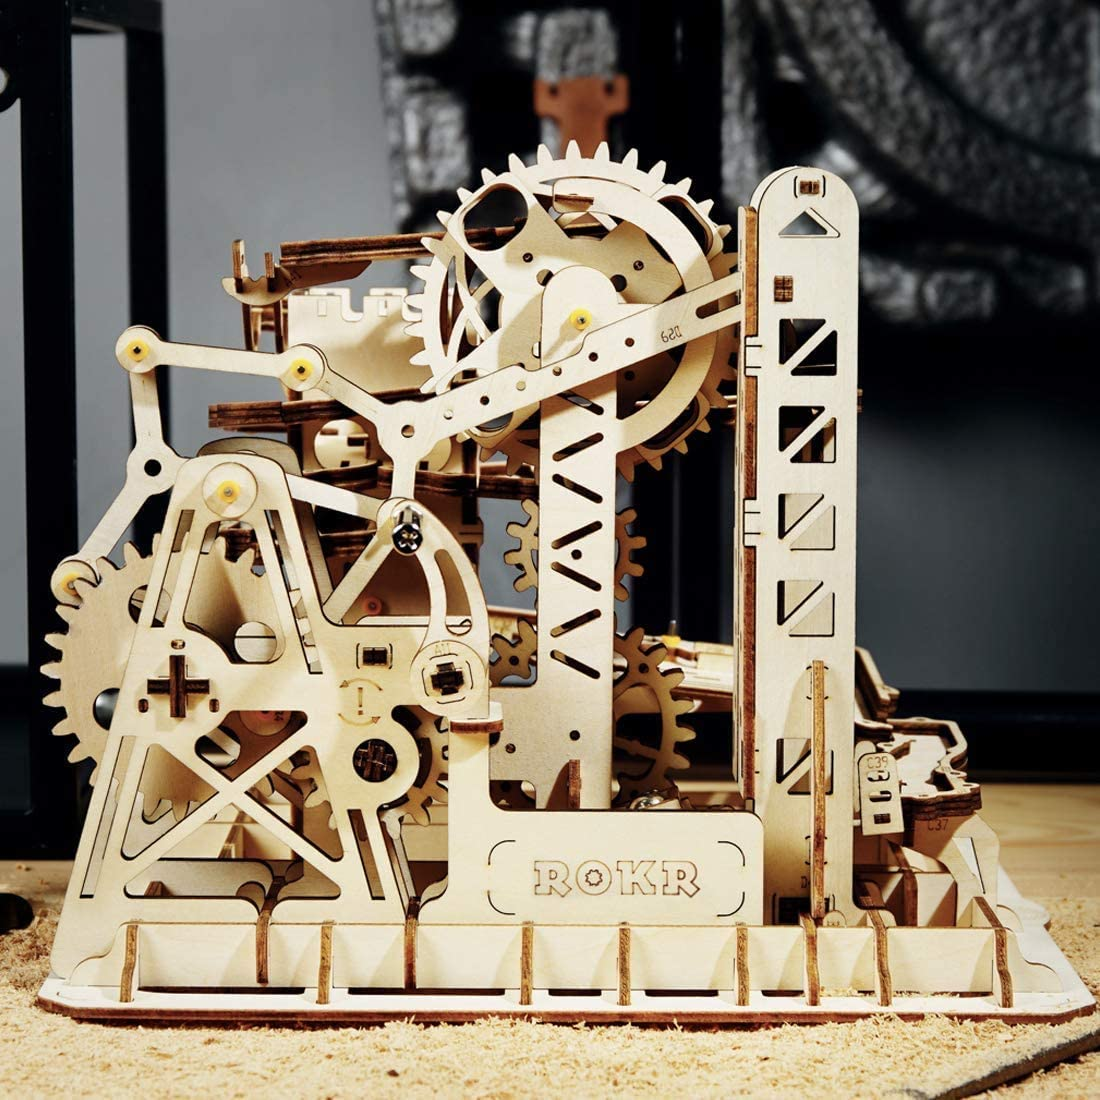 ROKR DIY Wooden Model Kits Mechanical Gear Drive 3D Puzzle Toy for Adult Teens